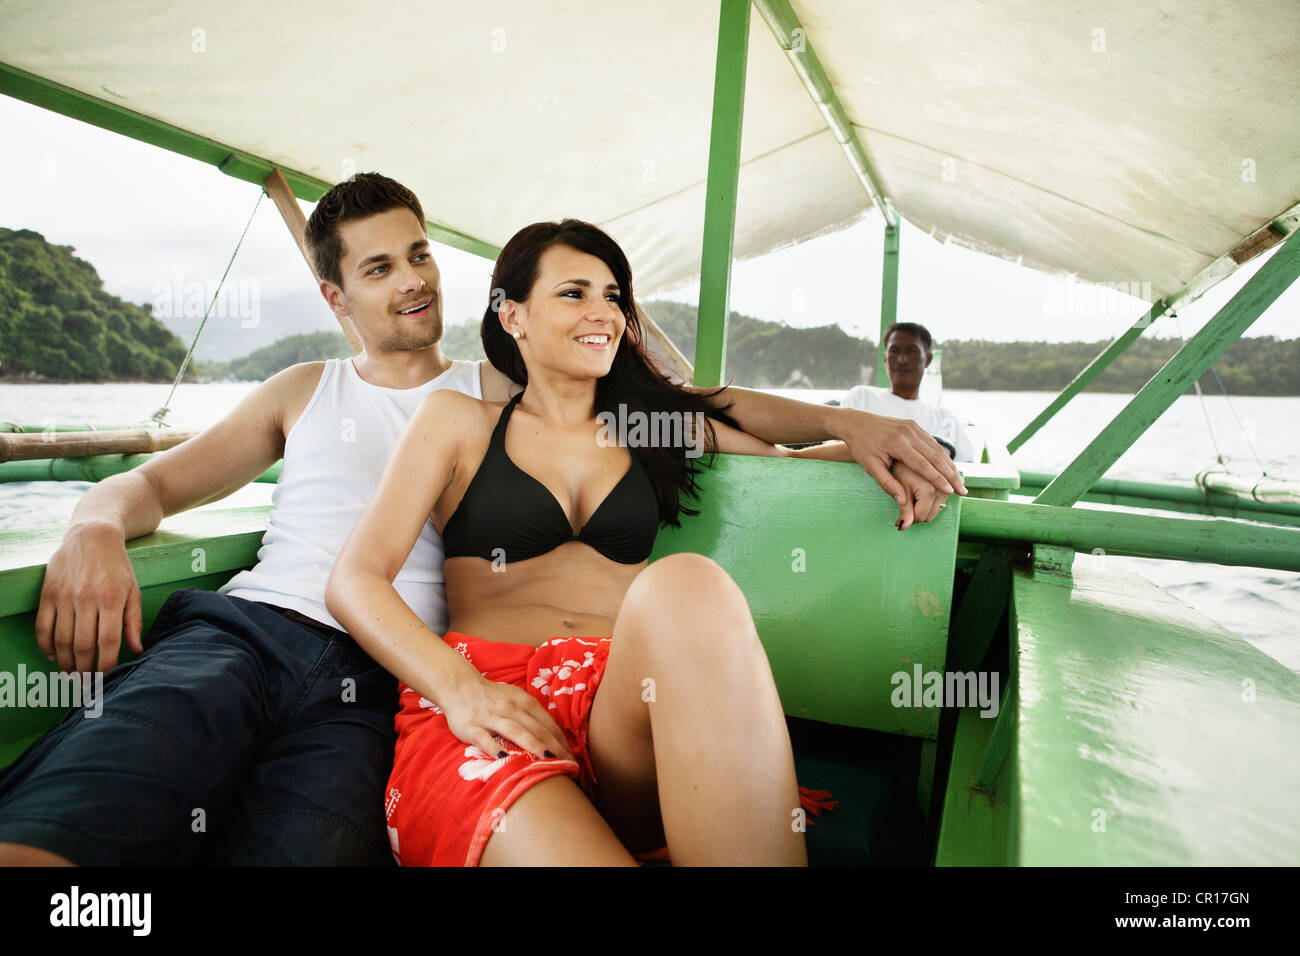 Couple relaxing on boat in river Stock Photo